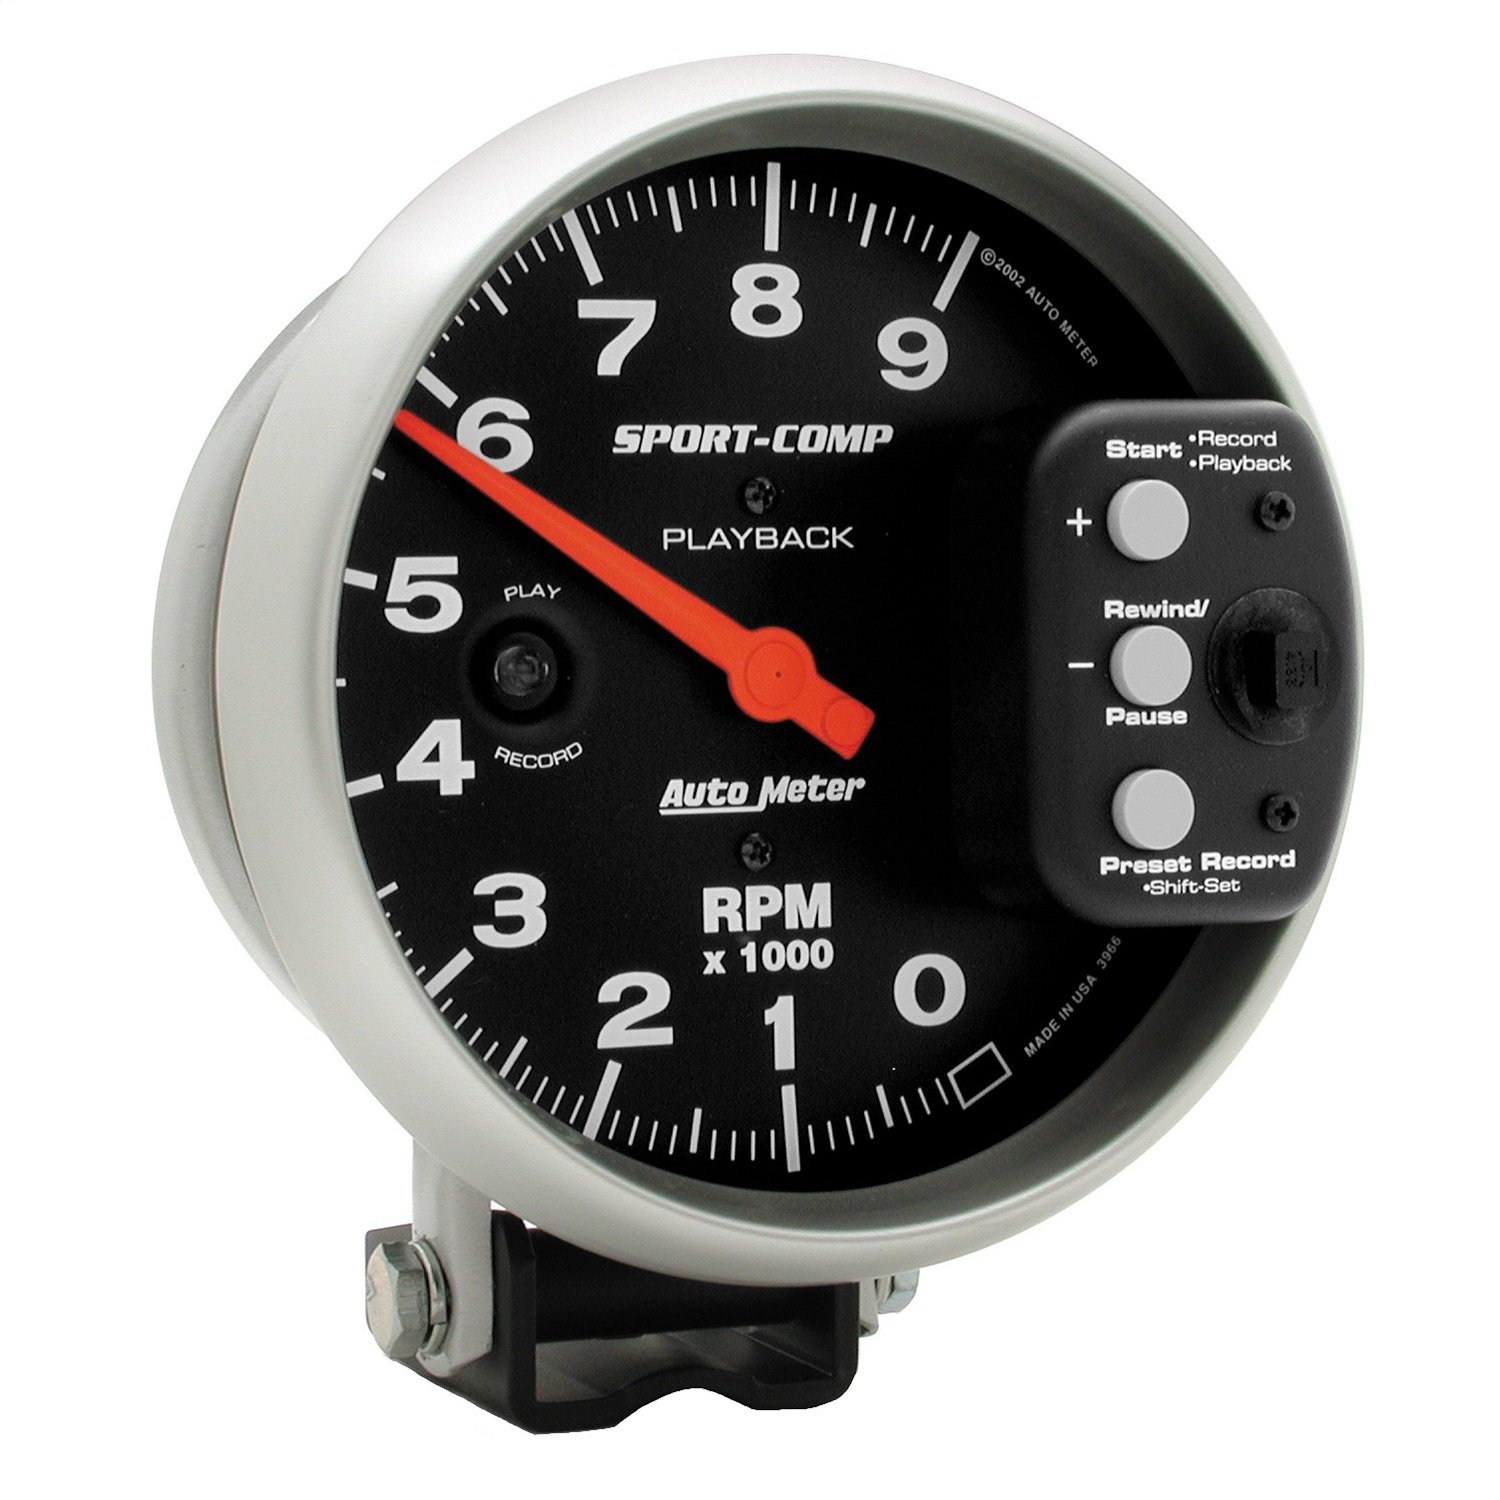 Auto Meter 3966 Sport-Comp Playback Tachometer by Auto Meter (Image #1)